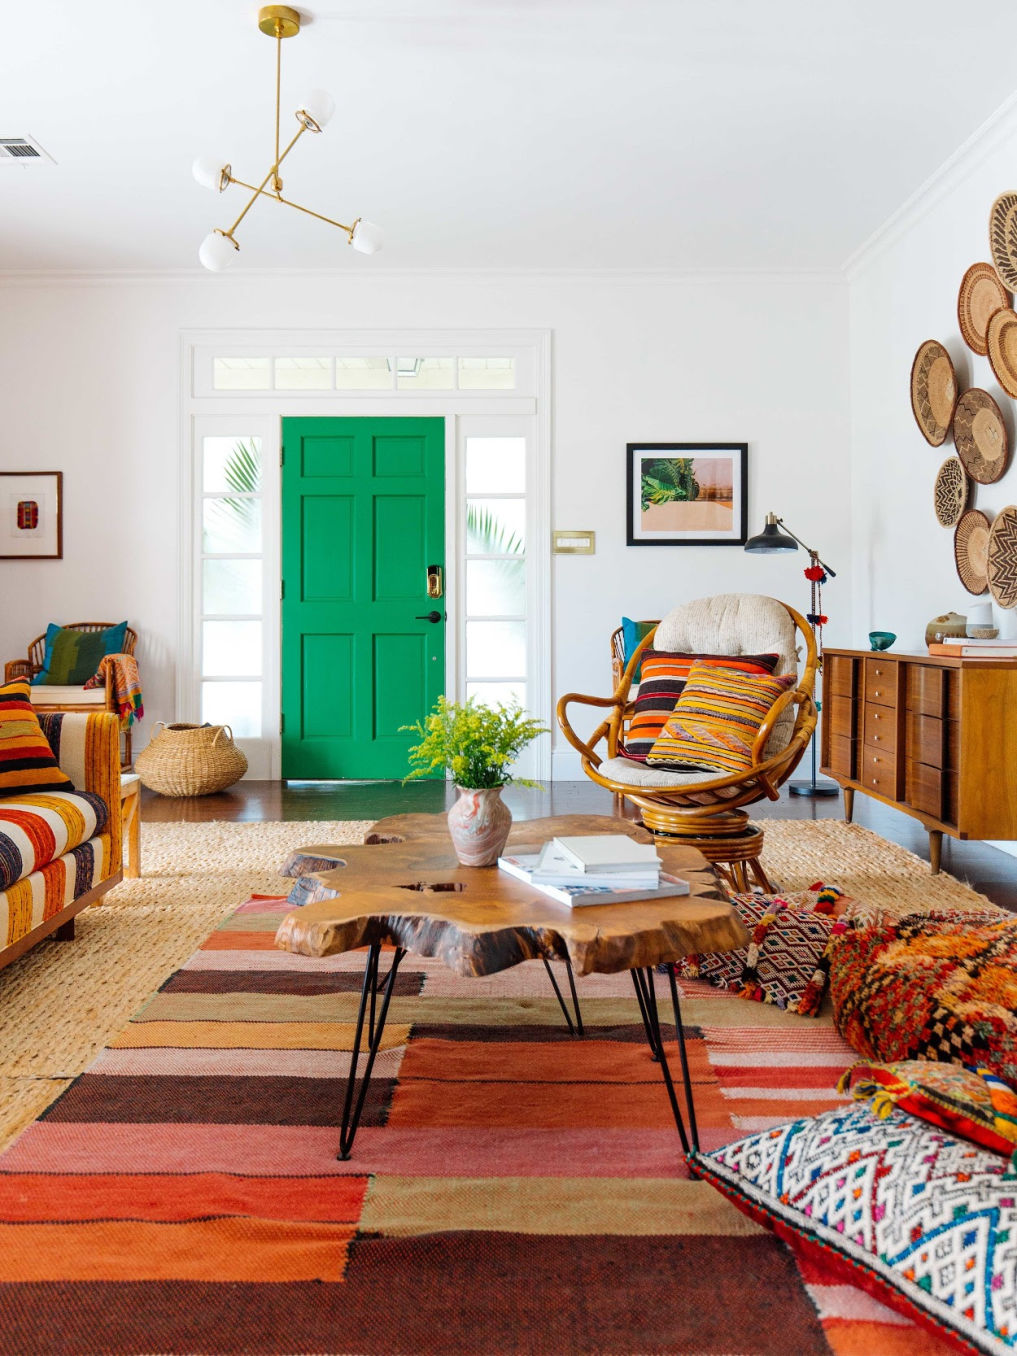 Colorful eclectic home tour of Old Brand New kellyelko.com #eclecticdecor #bohodecor #hometour #housetour #decor #midcentury #midcenturymodern #rattan #green